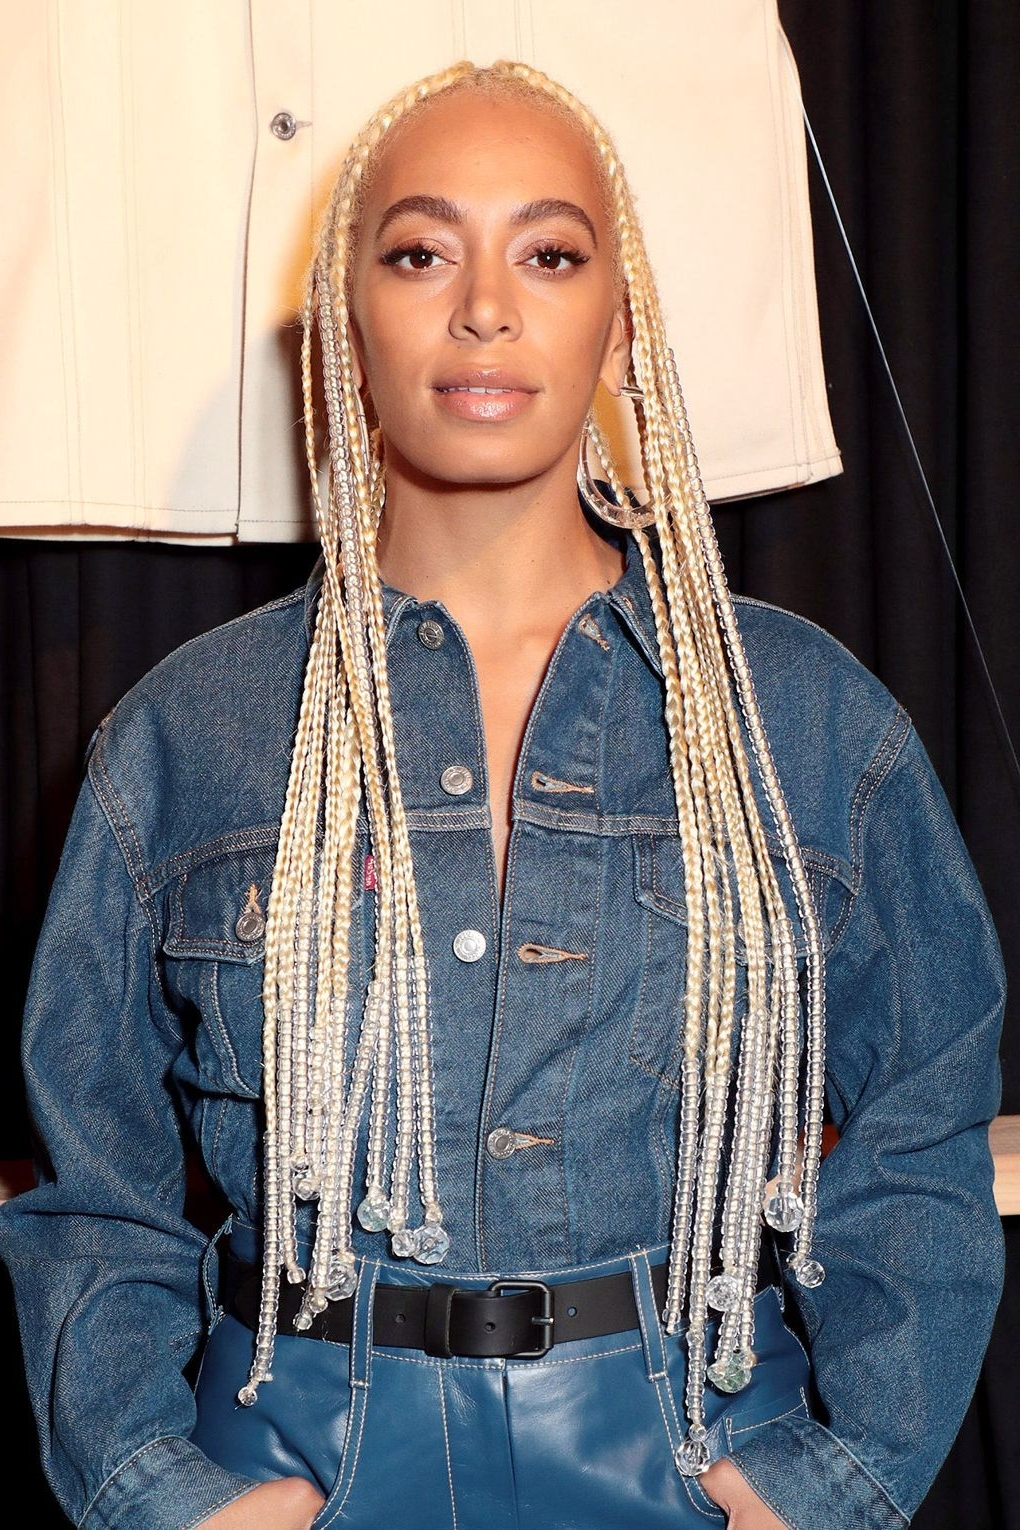 Best And Newest Blonde Braided Hairstyles Intended For The Coolest Celebrity Plaits & Braided Hairstyles (View 10 of 15)